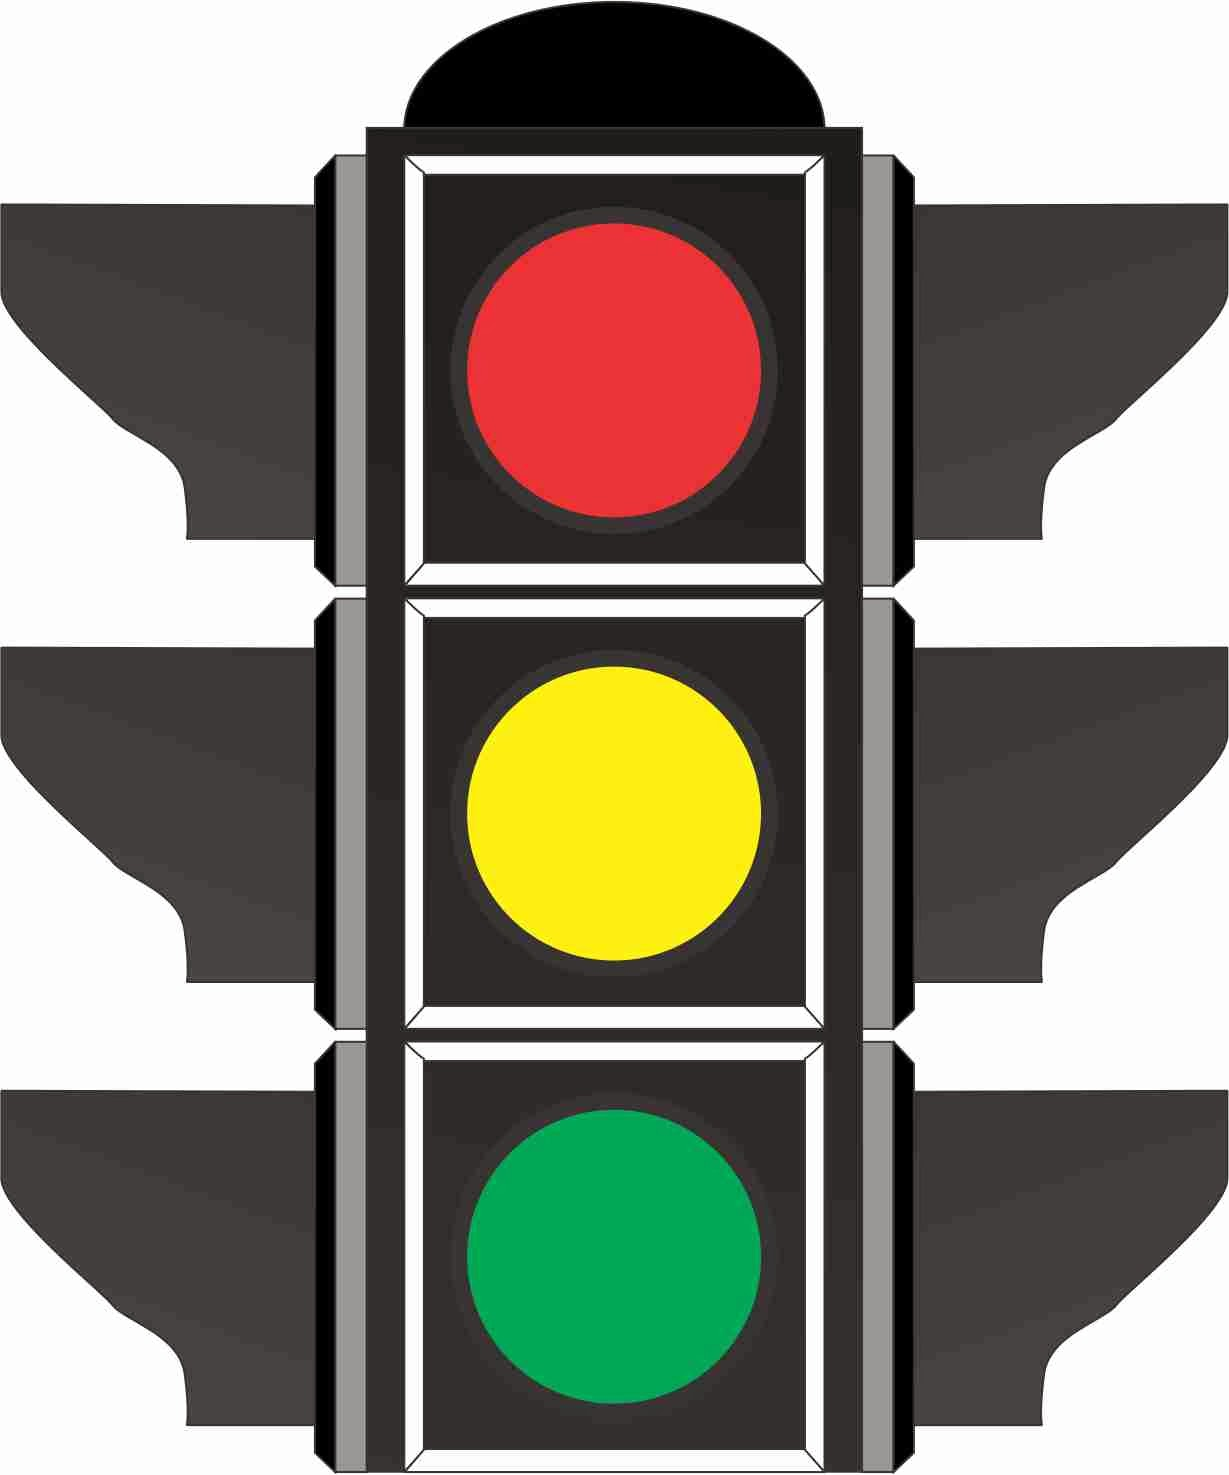 1229x1475 Coreldraw Tutorial New Simple How To Draw Traffic Light